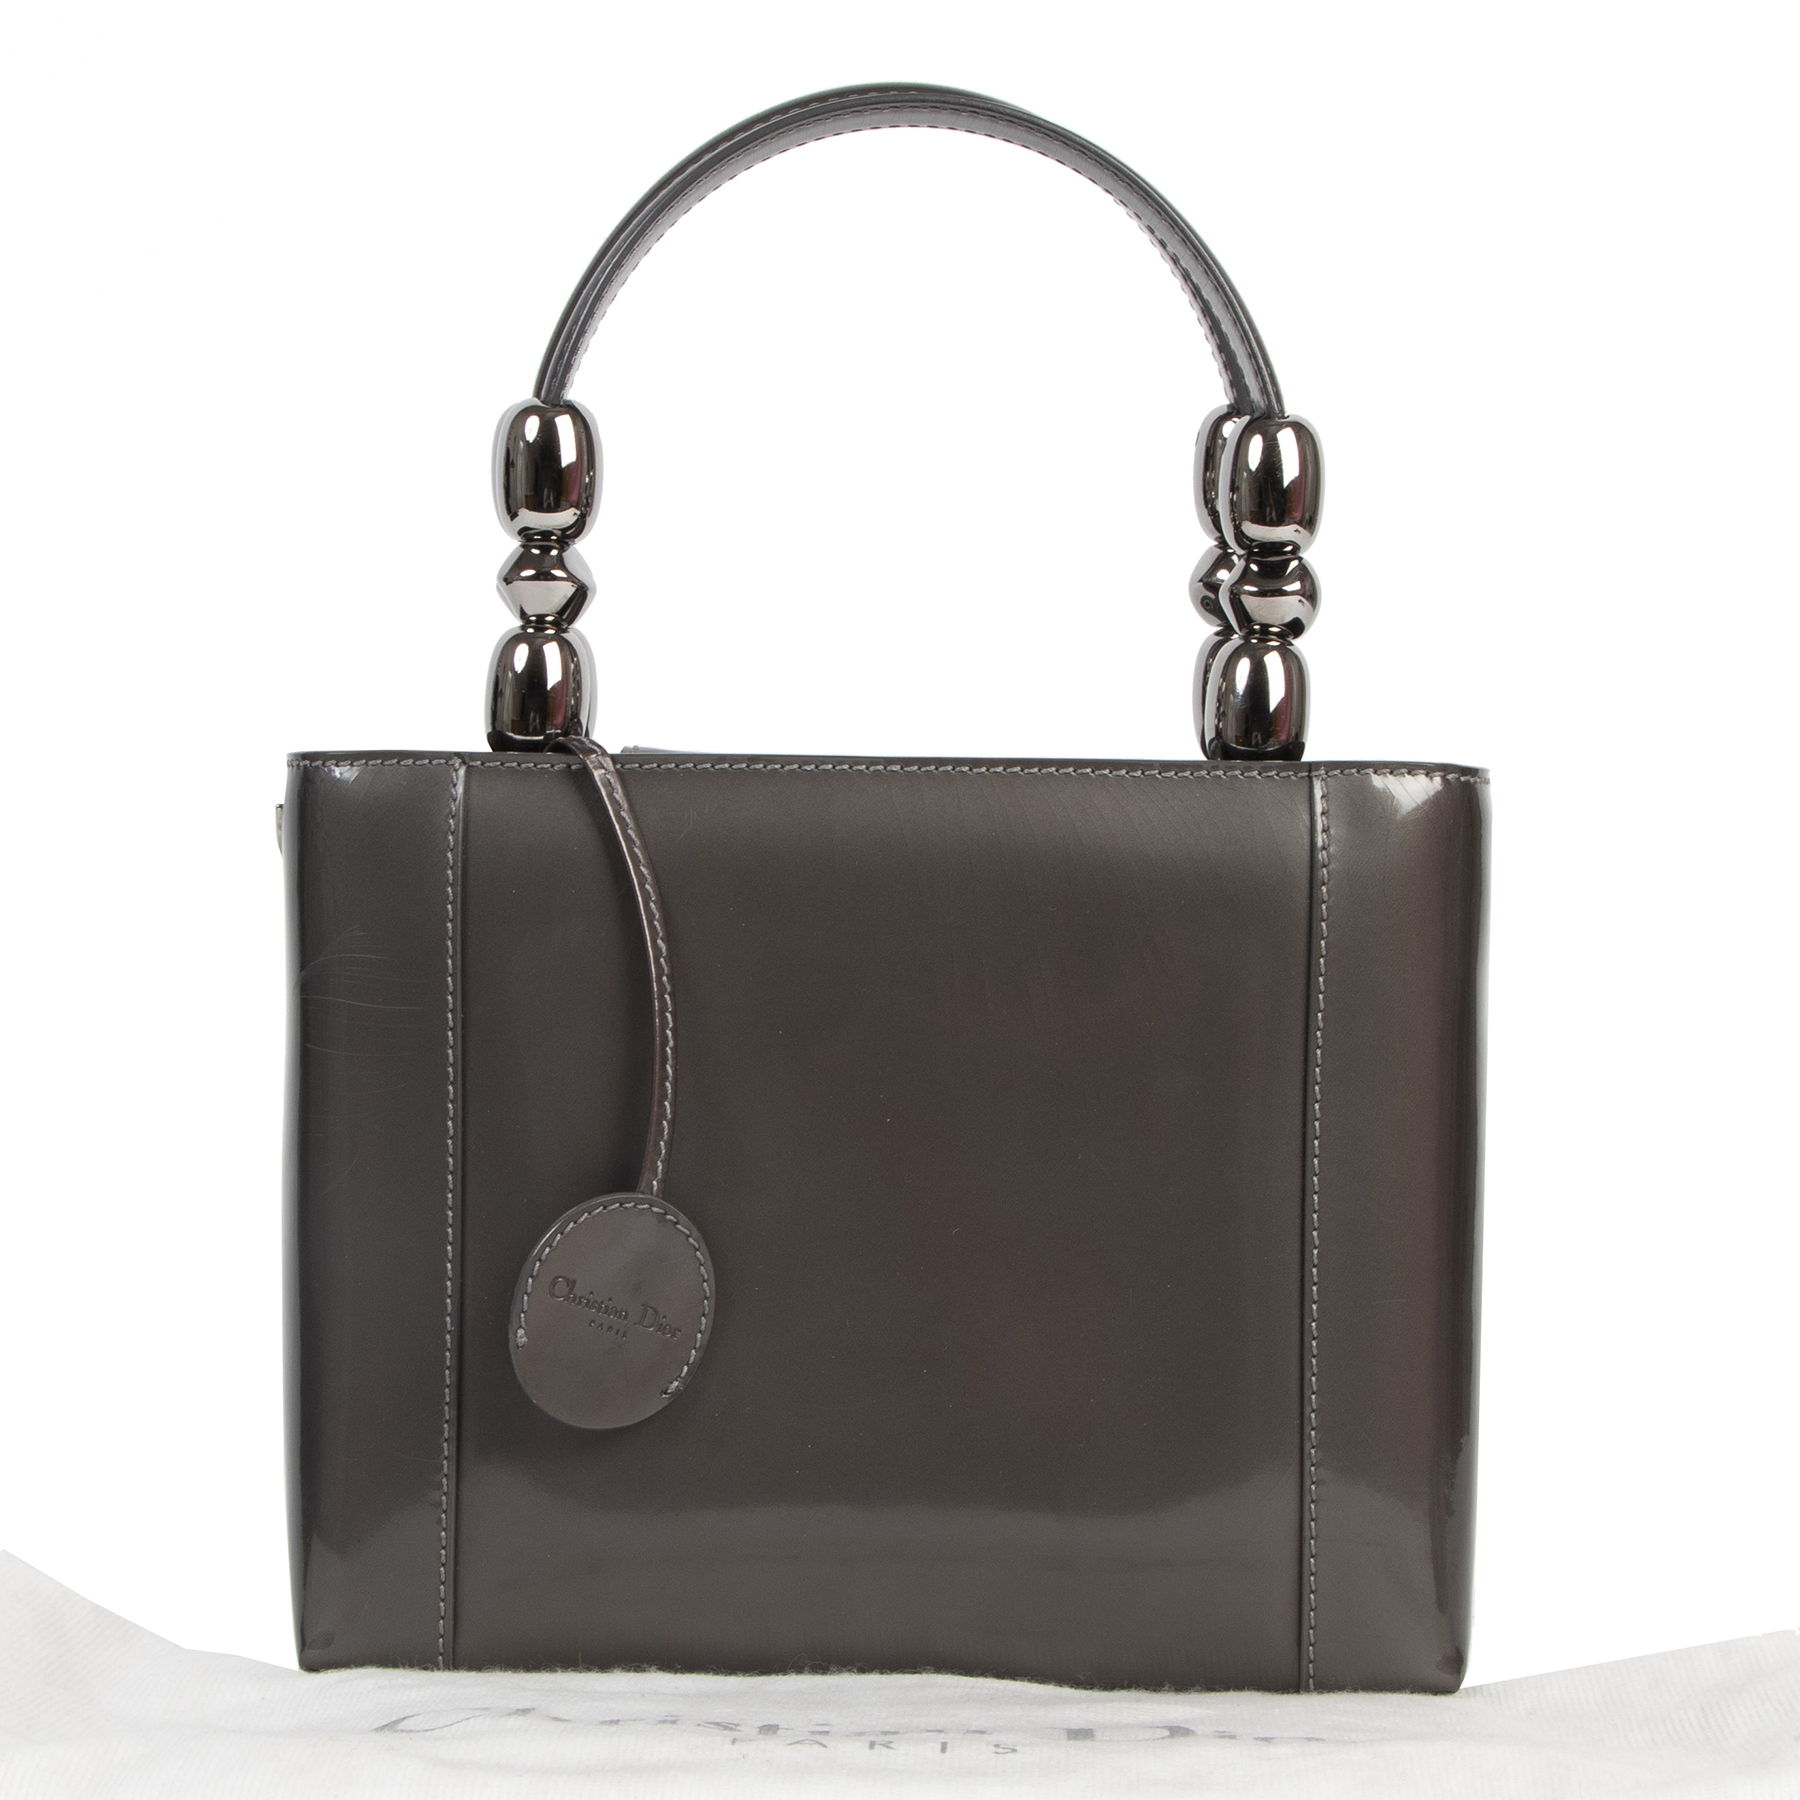 Authentieke tweedehands vintage Christian Dior Malice Grey Top Handle Bag koop online webshop LabelLOV